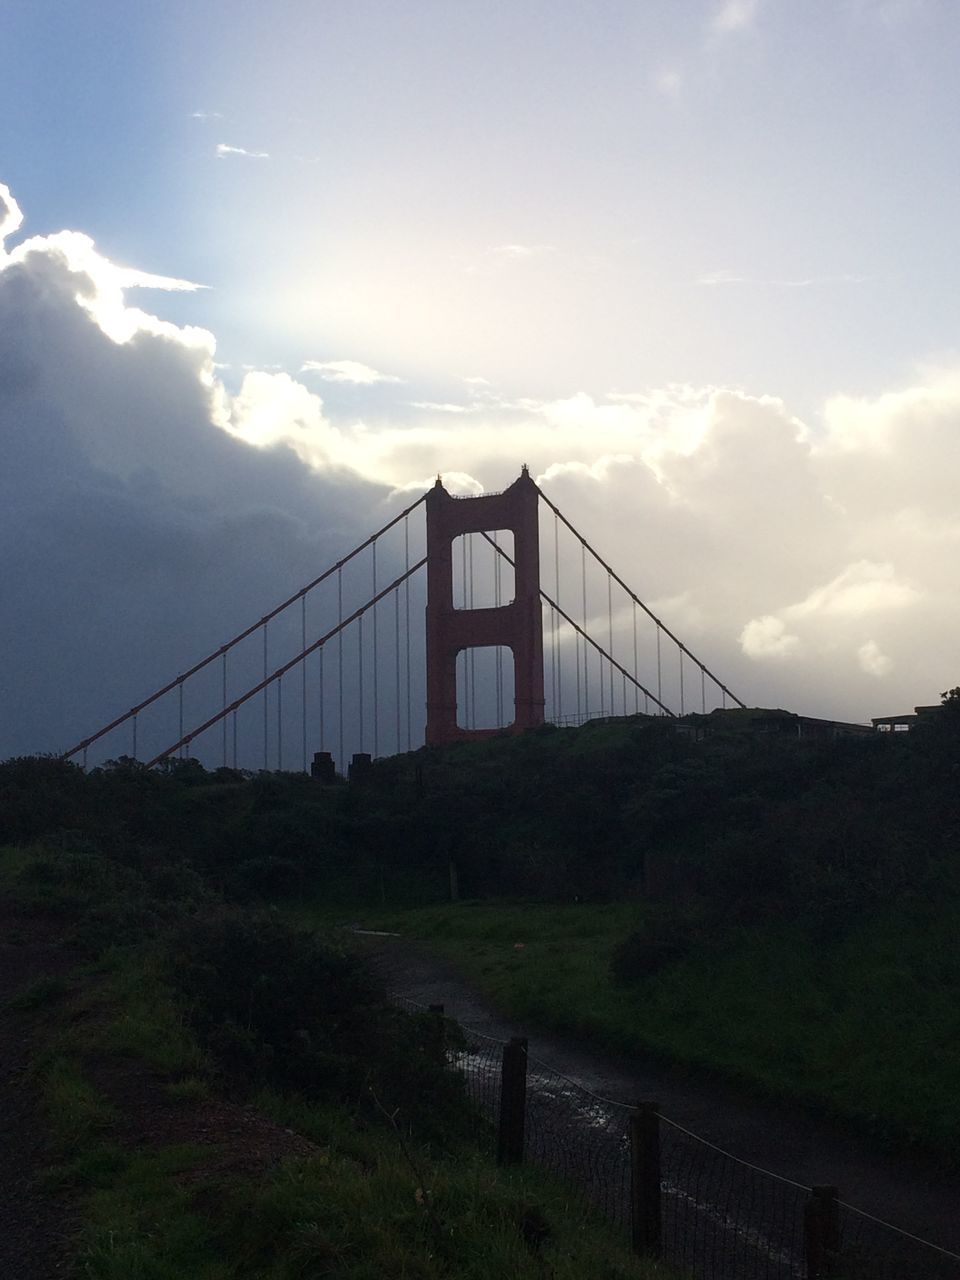 connection, bridge - man made structure, suspension bridge, architecture, sky, built structure, bridge, transportation, travel destinations, cloud - sky, tourism, outdoors, travel, no people, mountain, day